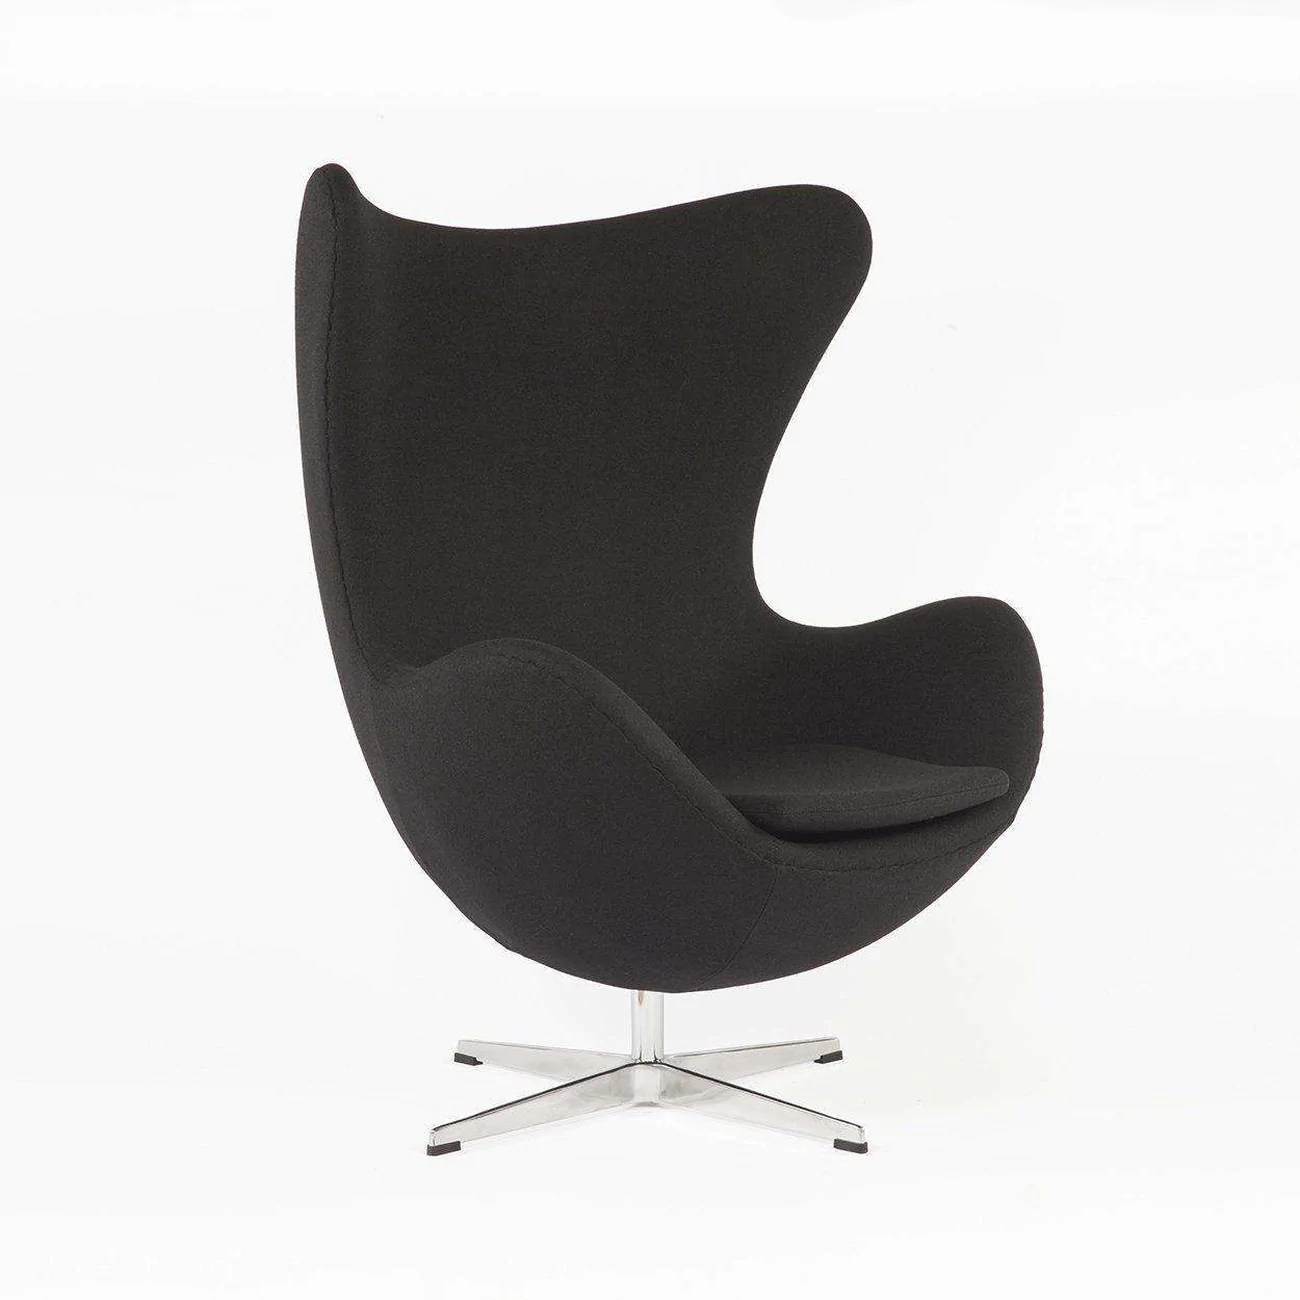 mid century egg chair white wicker rocking canada modern reproduction black inspired by arne quote details